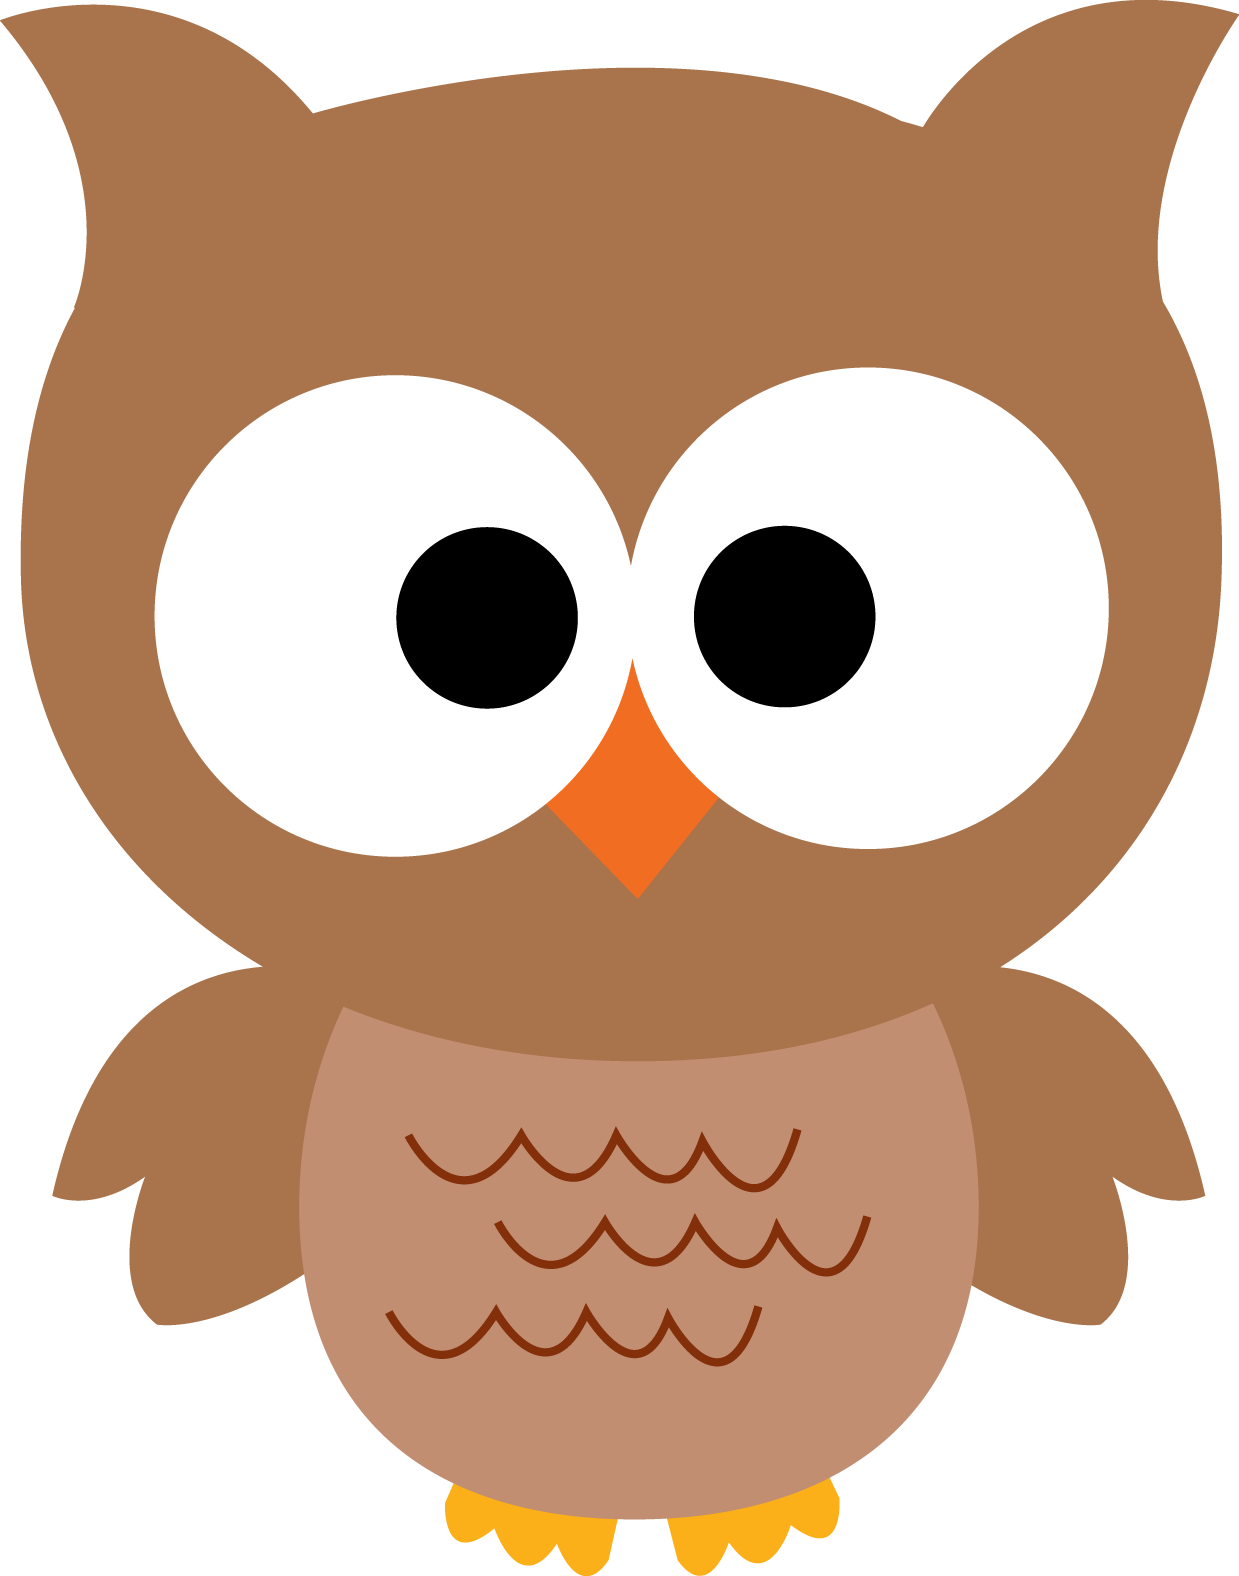 Noted pic cartoon vector. Owl clip art clear background picture free library